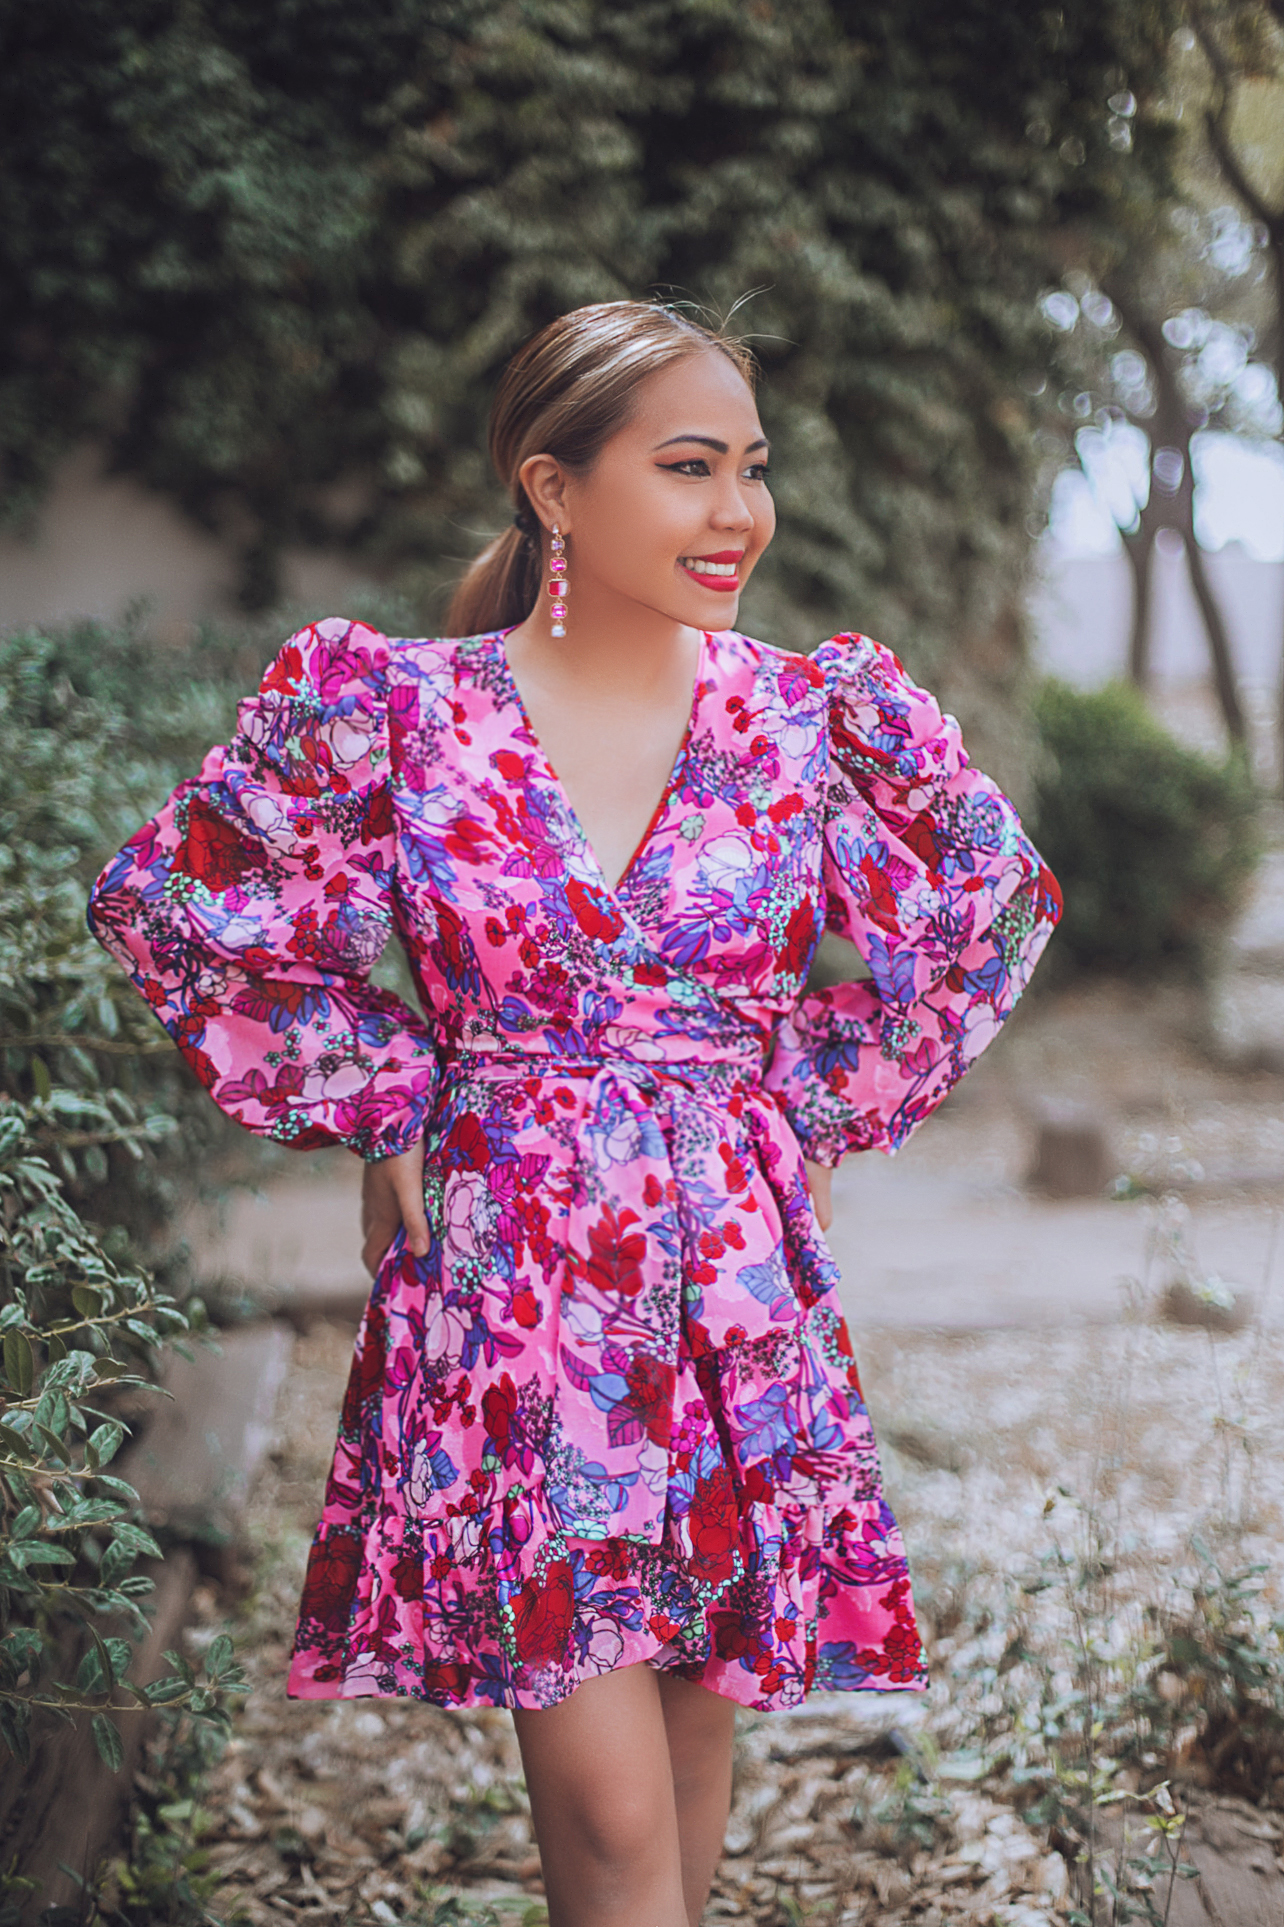 How to Wear a Floral Print Dress